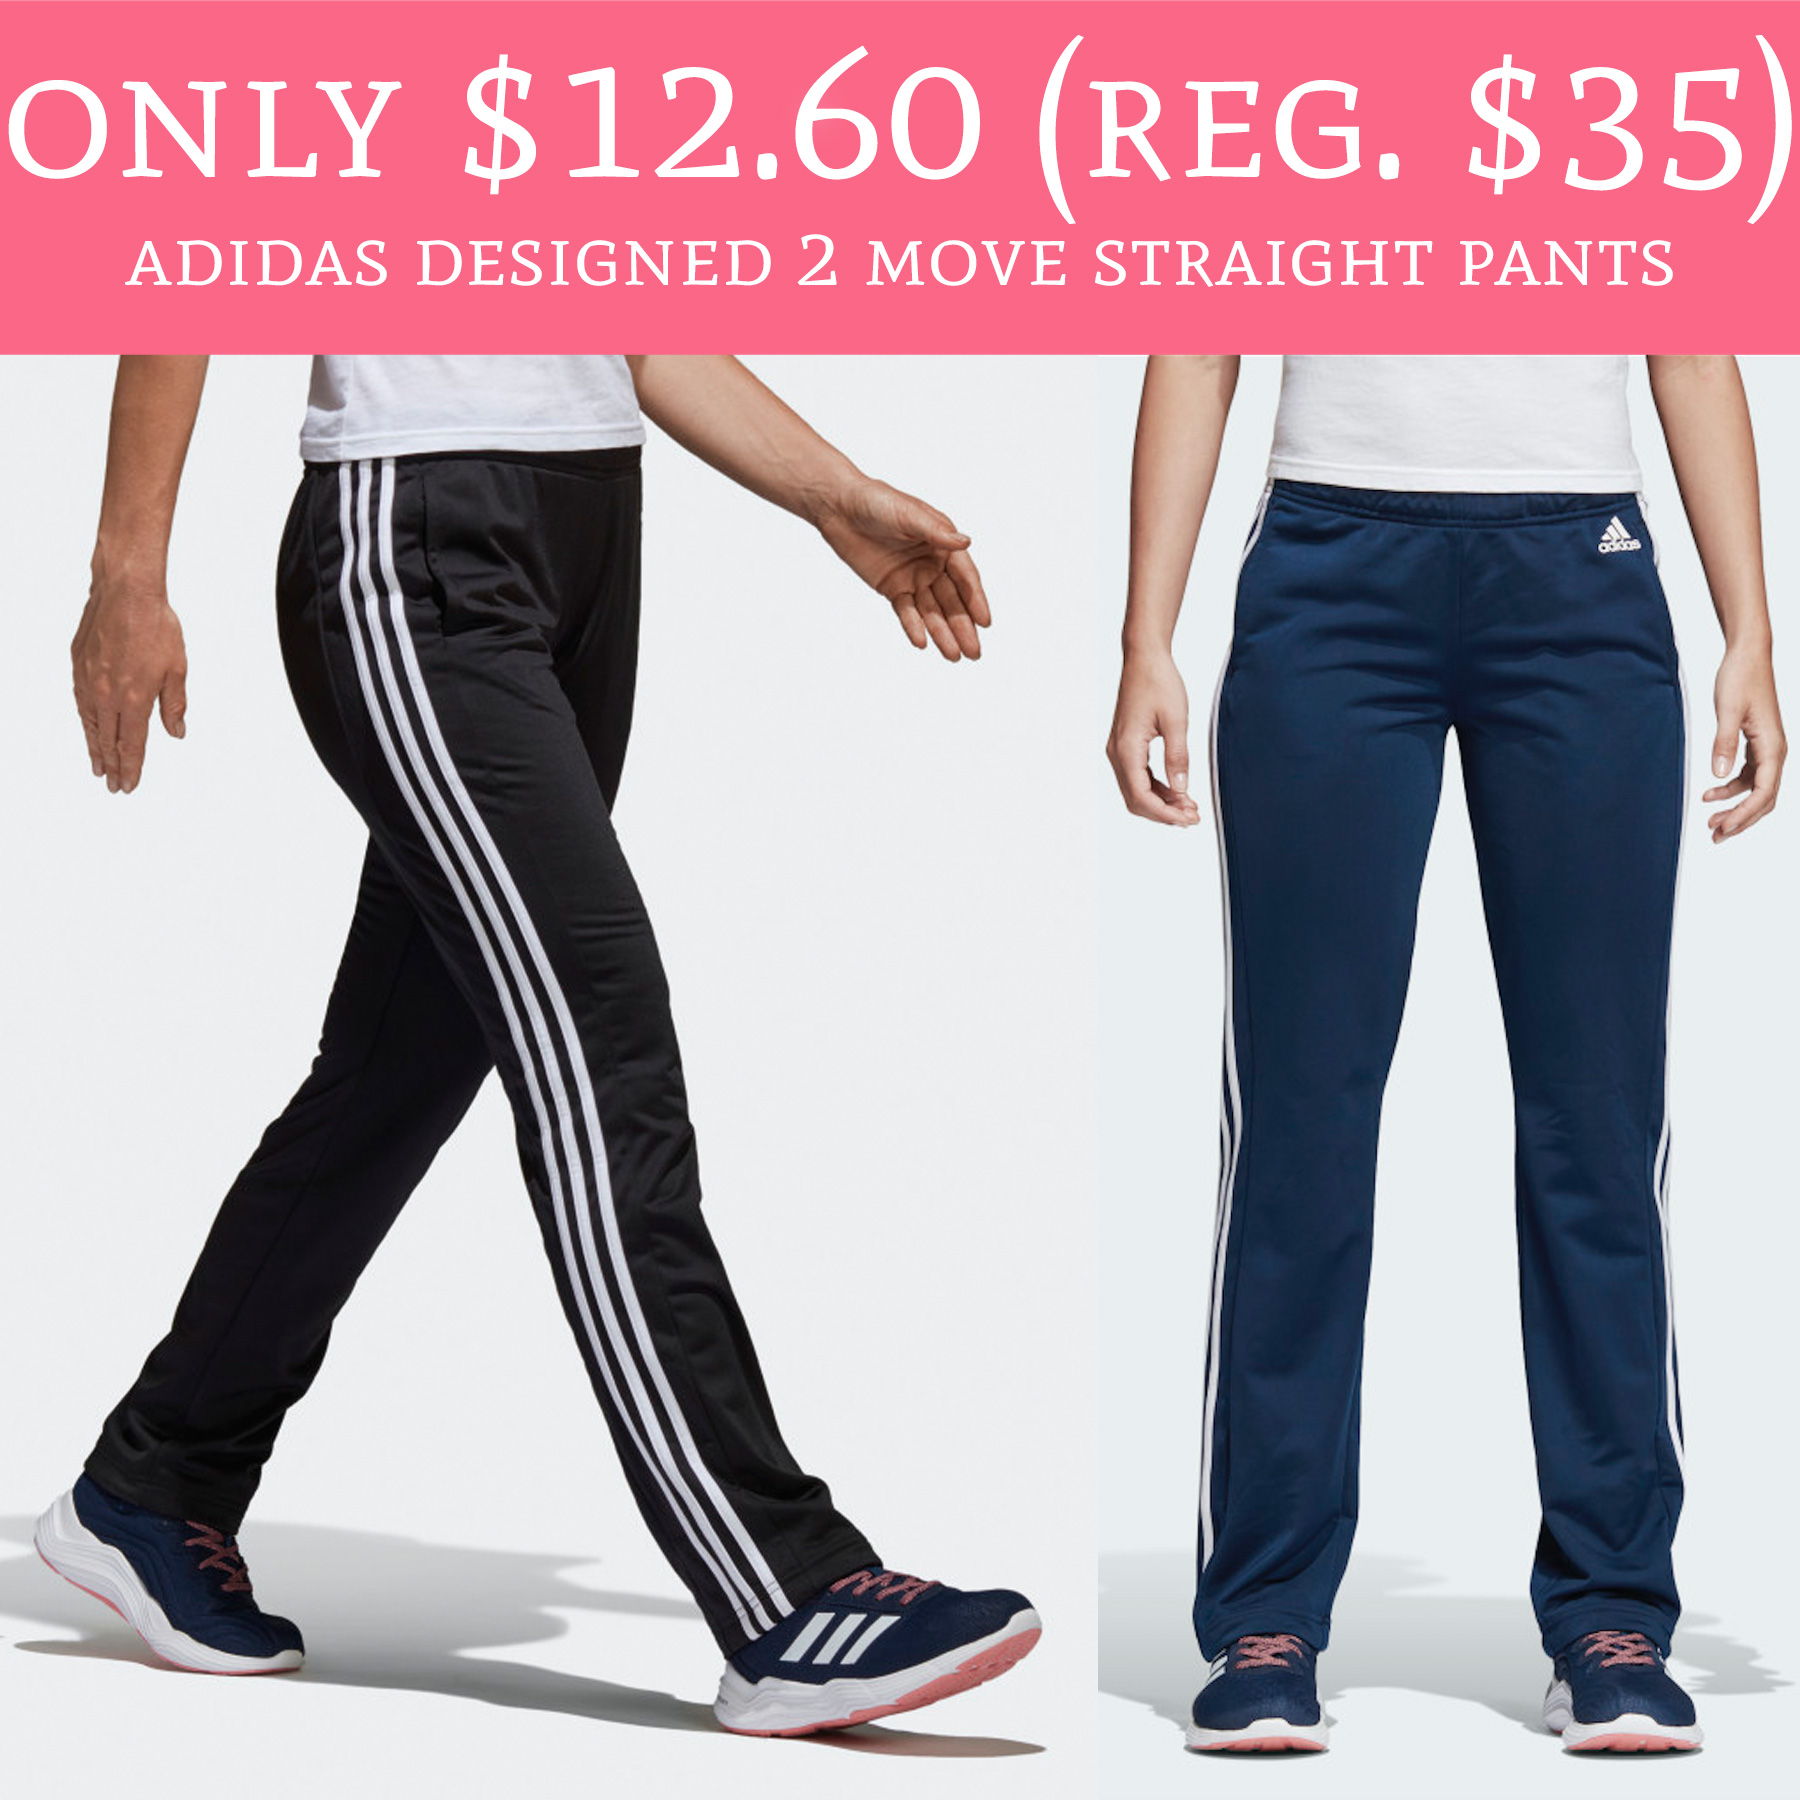 65c45d228ba5 This price is HOT!! 😱. Hurry over to Adidas.com to score Women's Designed  2 Move Straight Pants ...